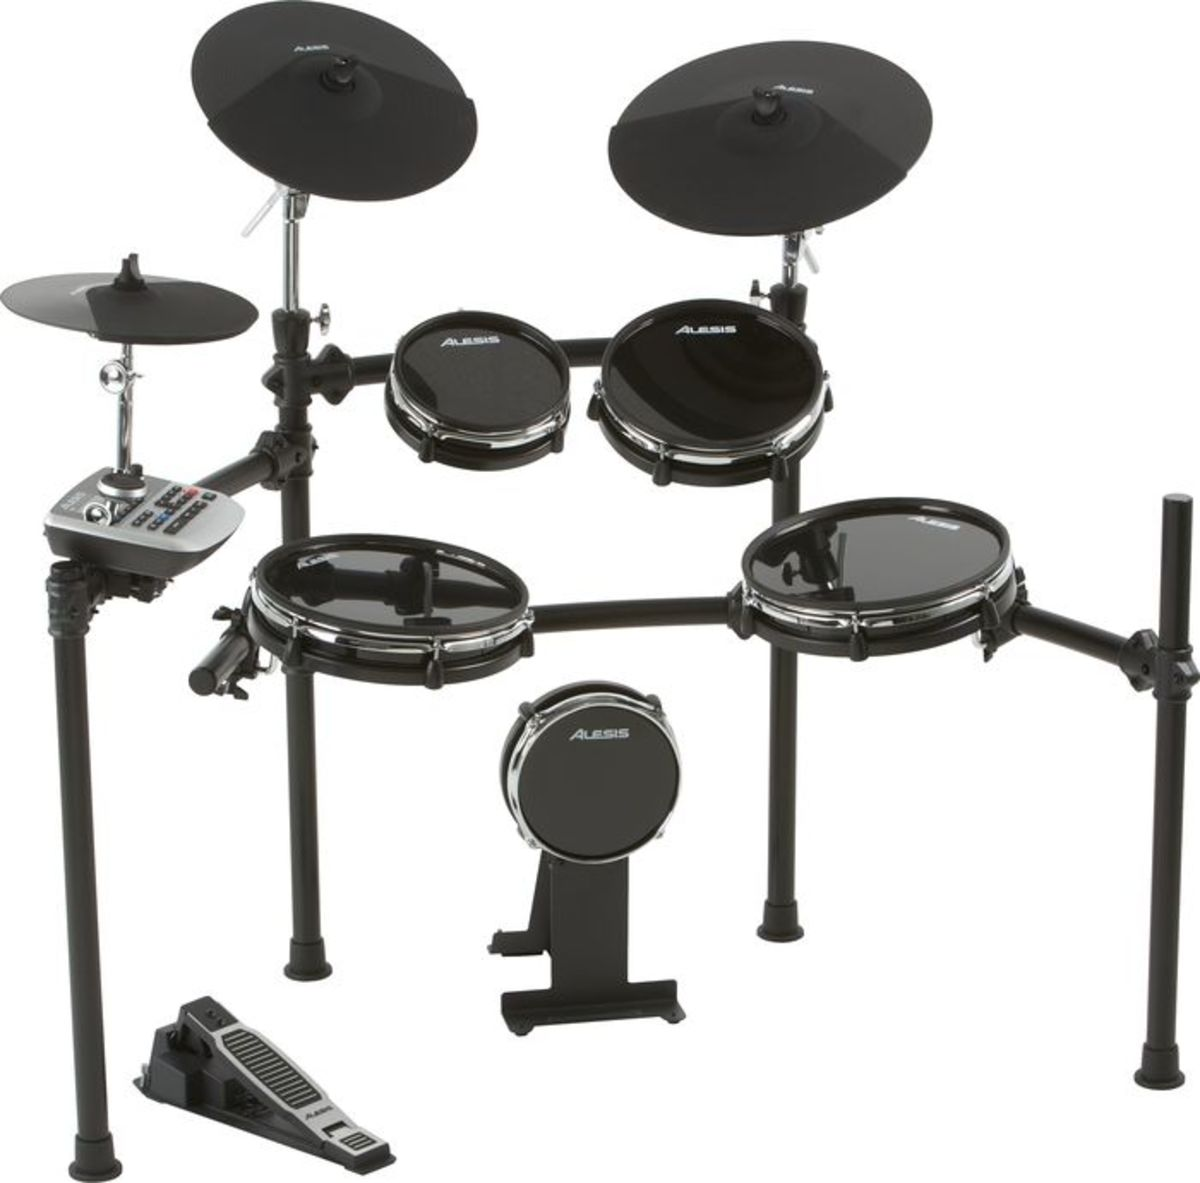 2019's Best Electronic Drum Sets for Kids and Beginners